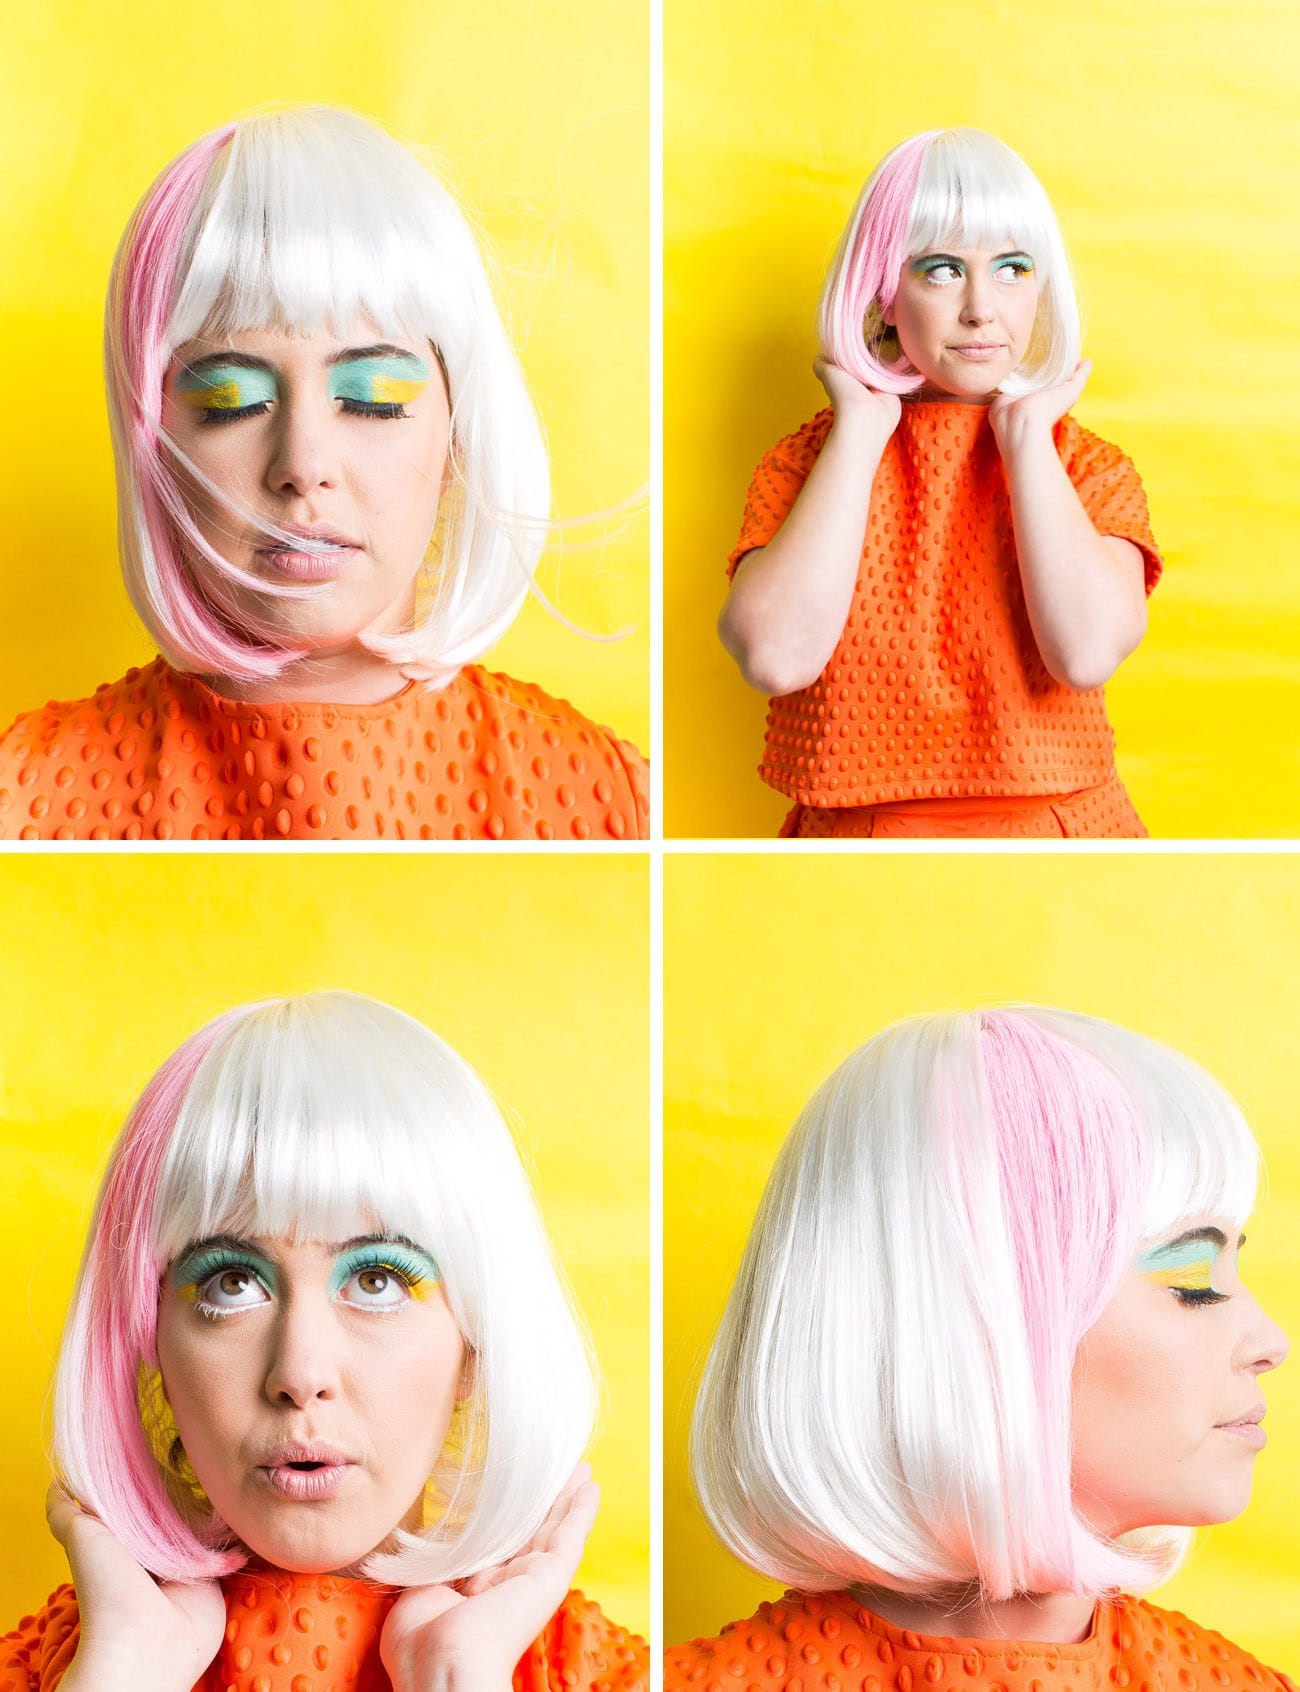 Winks & Wigs: DIY Wig and Lash Combinations for Halloween by Sugar & Cloth -lavender wig - 60's Mod - Color Block - ideas - ashley rose - best DIY blog - houston blogger #diy #blogger #costume #halloween #diycostume #halloweencostume #wig #falsies #lastminute